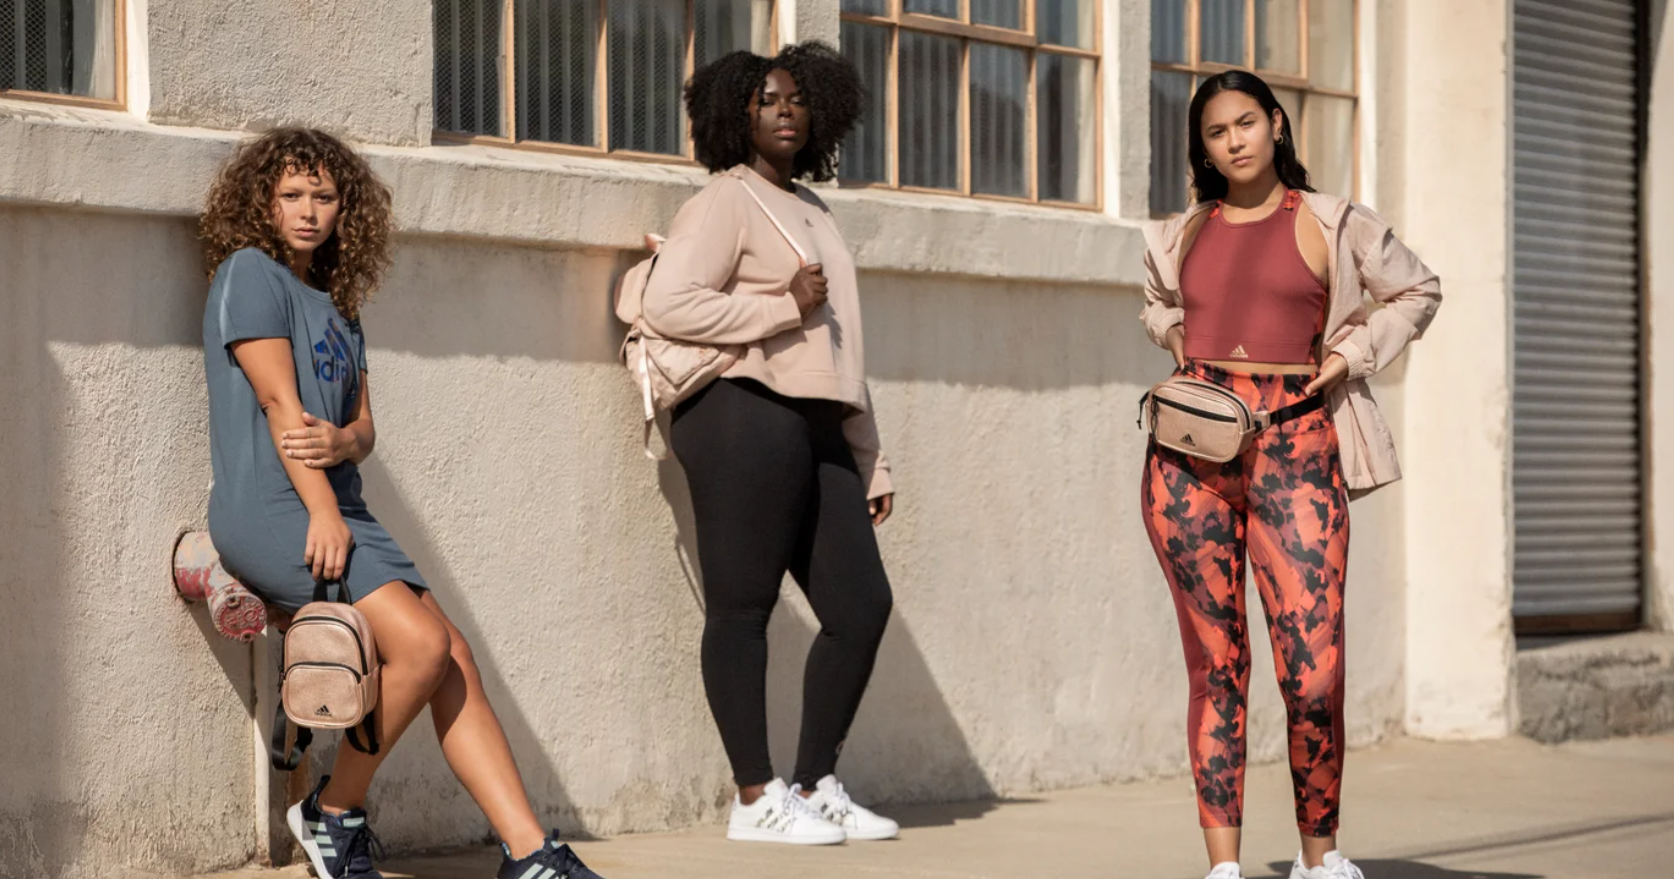 Kohl's is launching a new private-label specialty athleisure brand, FLX, in select stores and on its website beginning March 2021.